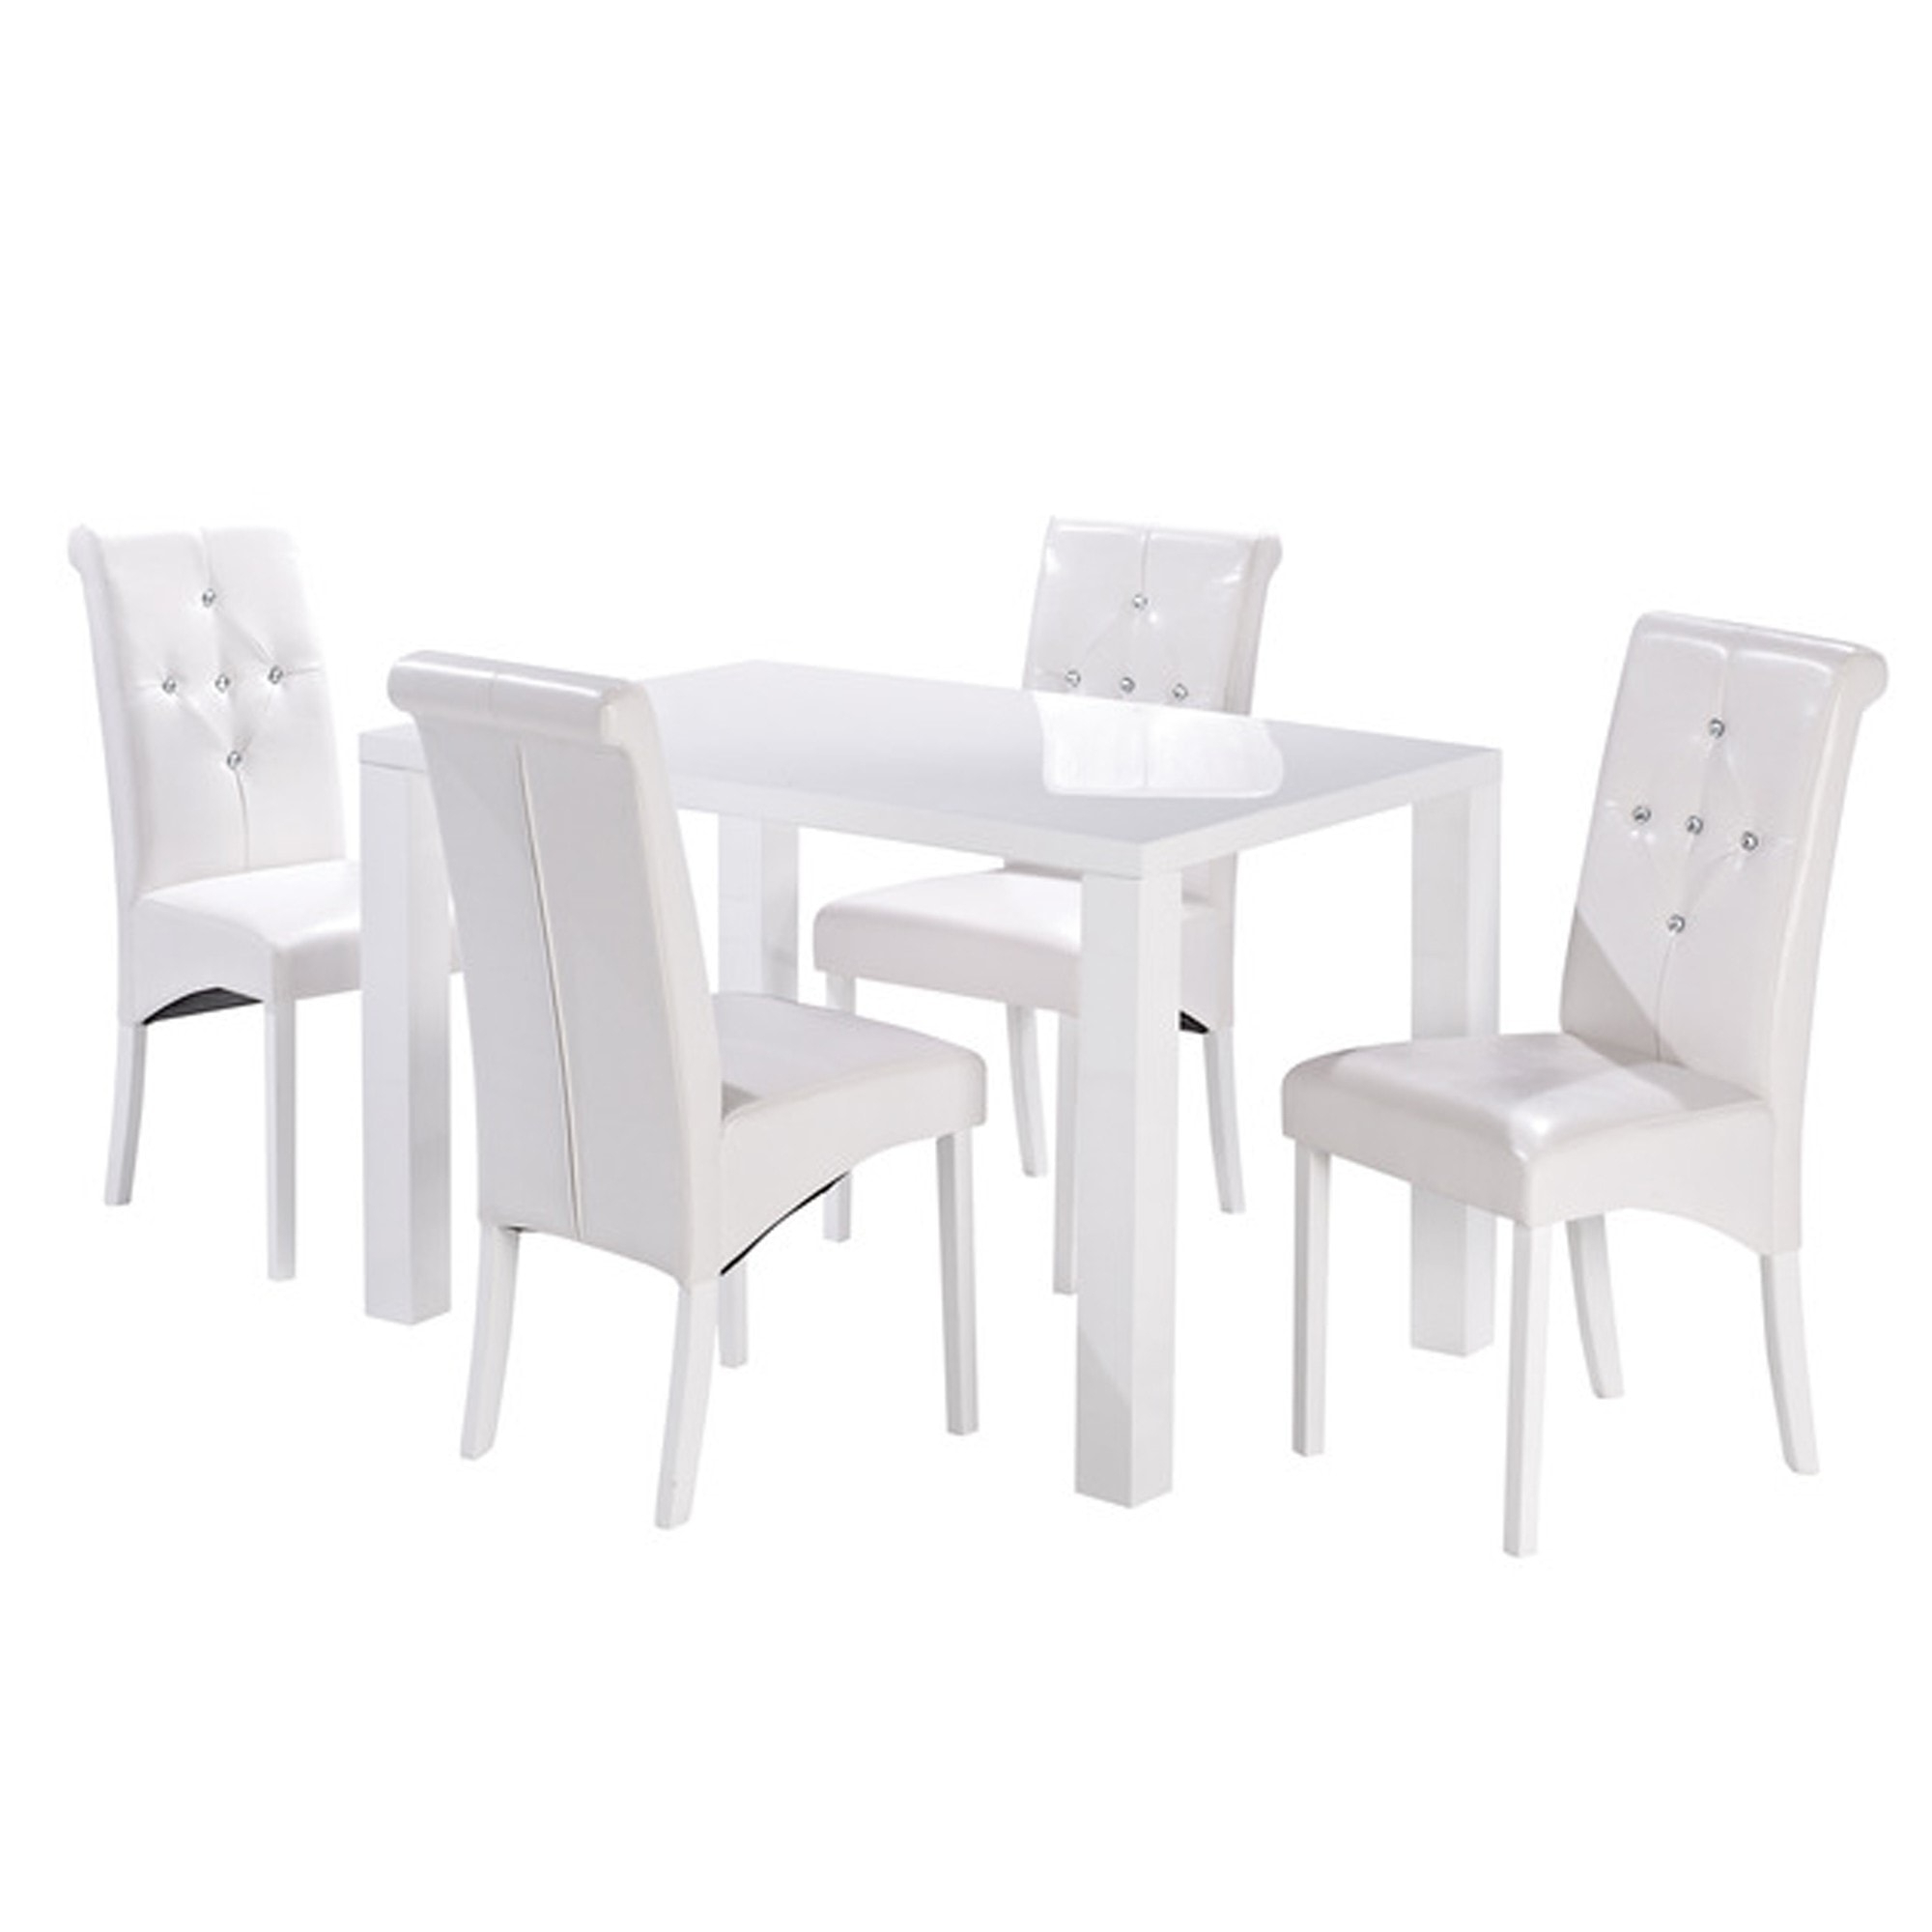 Puro White Medium Dining Table Throughout Favorite Medium Dining Tables (View 3 of 30)